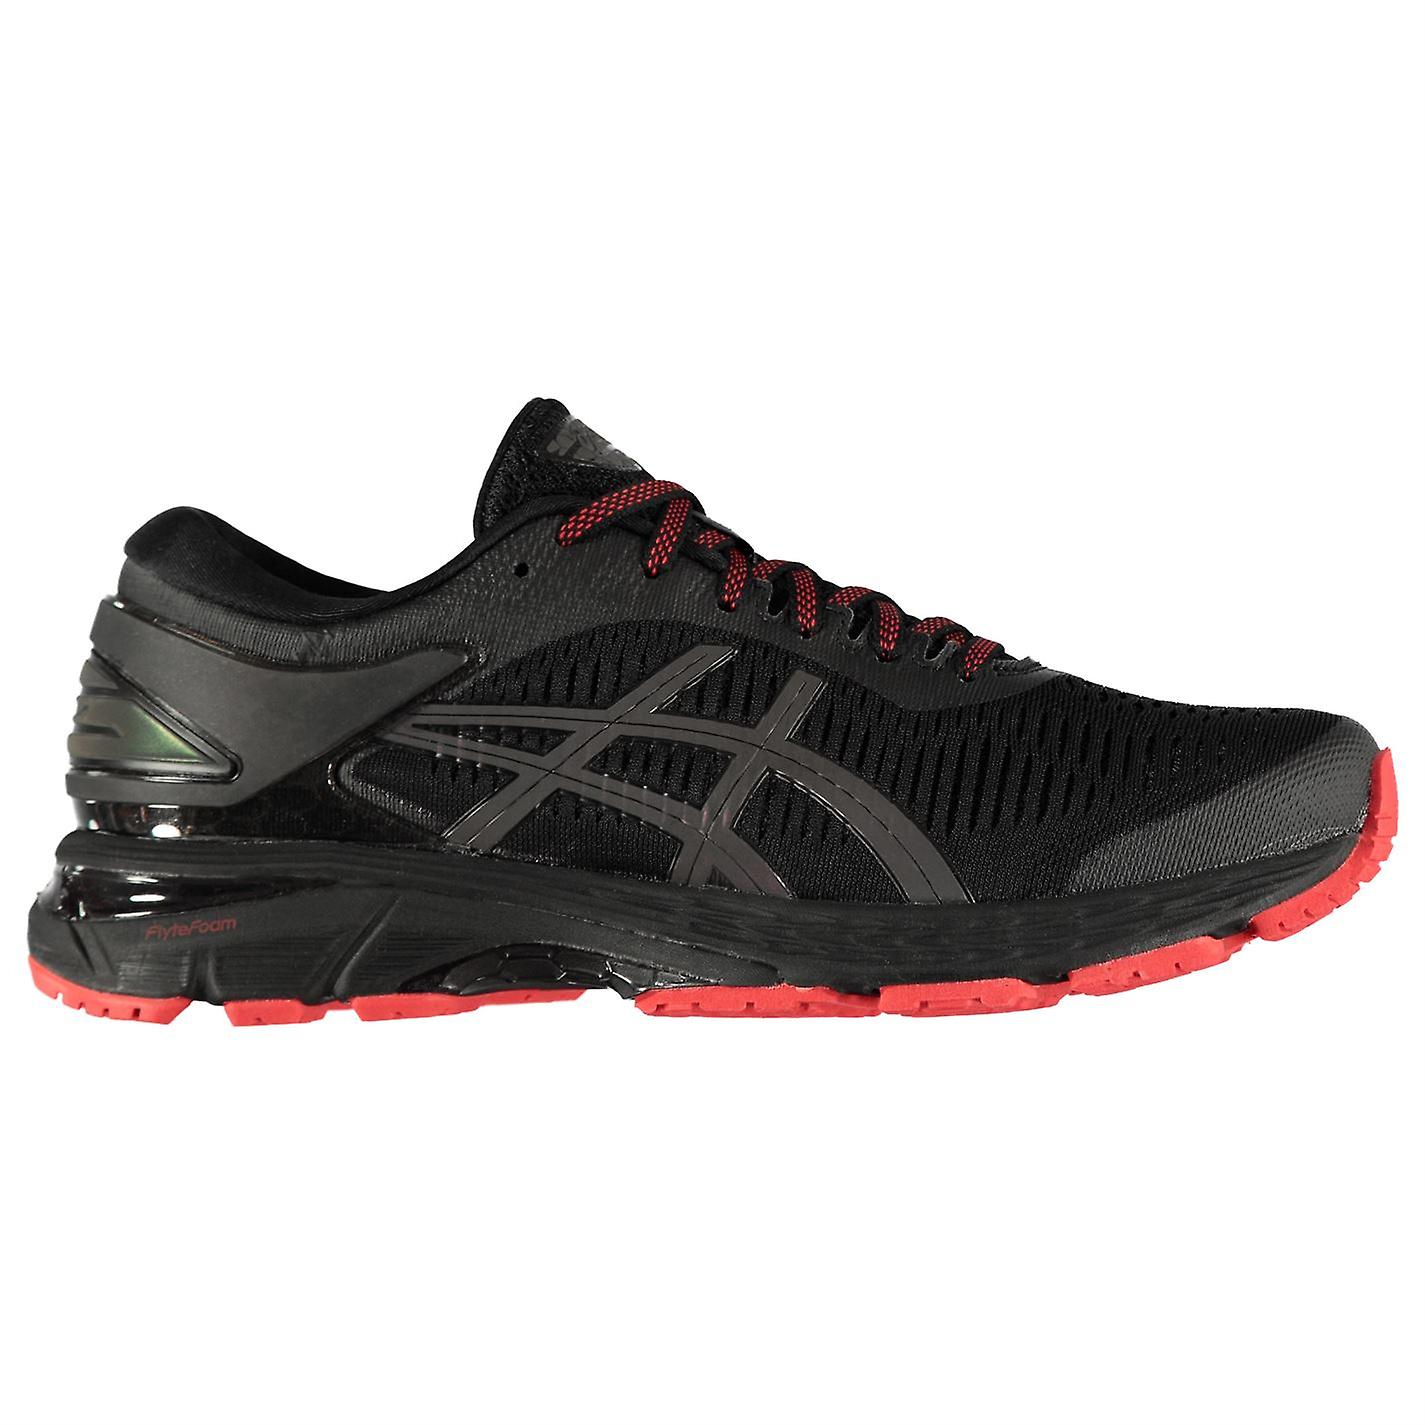 Asics Mens Gel Kayano 25 Lite Show Running chaussures Road Lace Up Mesh Upper